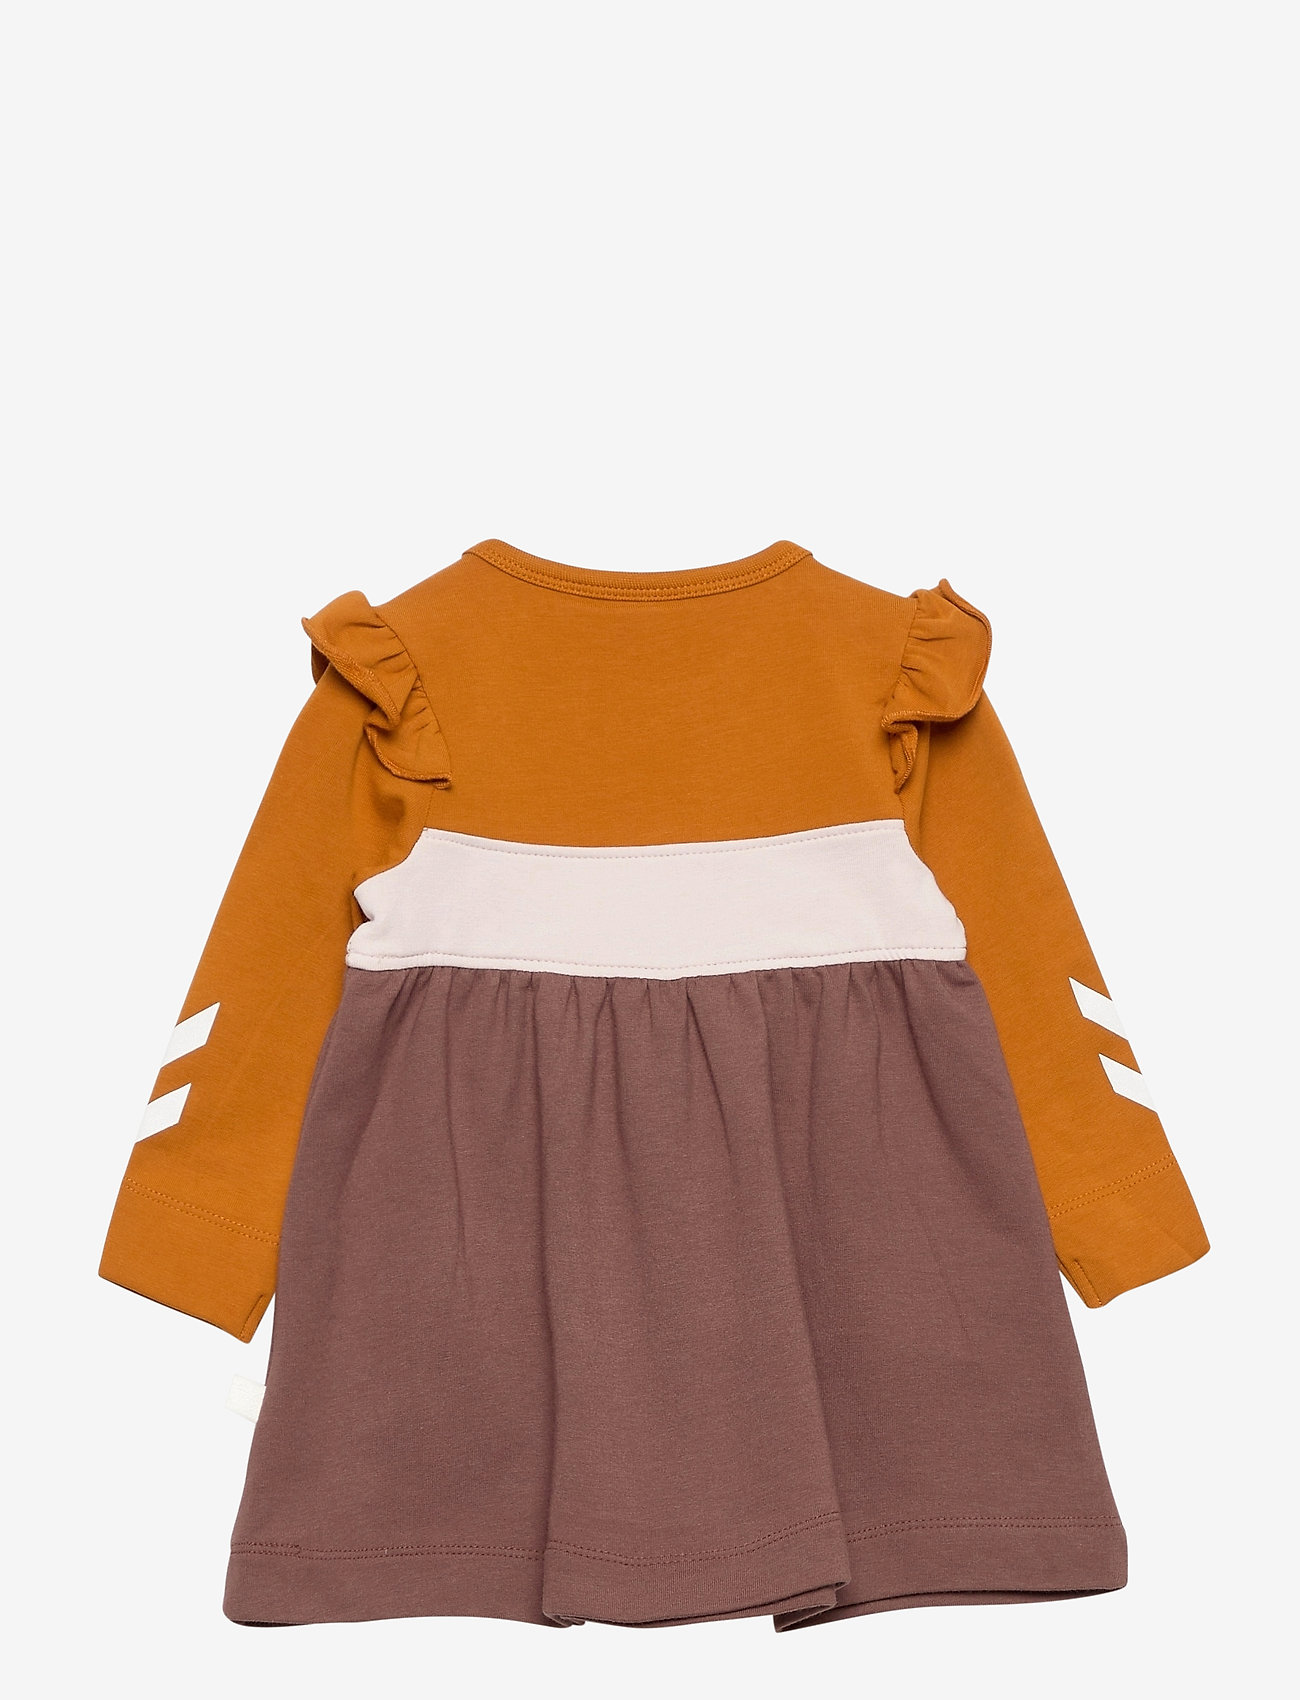 Hummel - hmlVICTORIA DRESS L/S - marron - 1